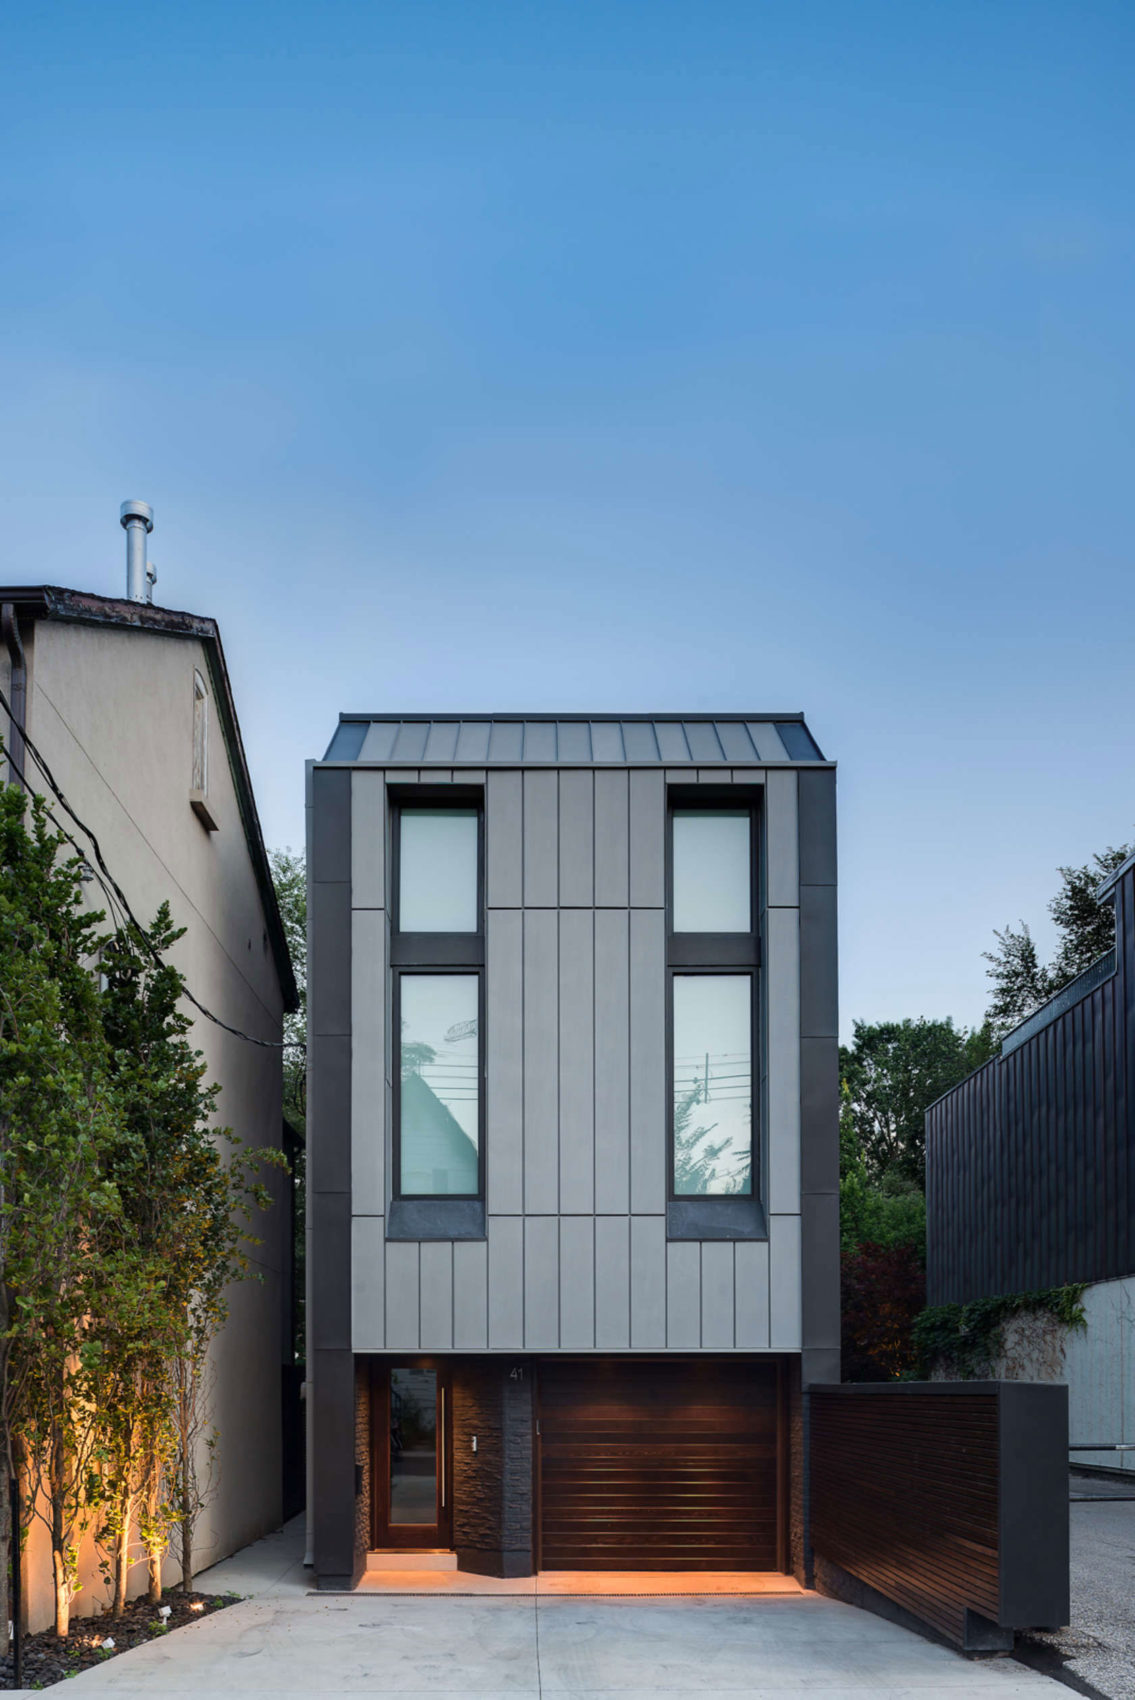 Berryman Street Residence by AUDAX Architecture (14)